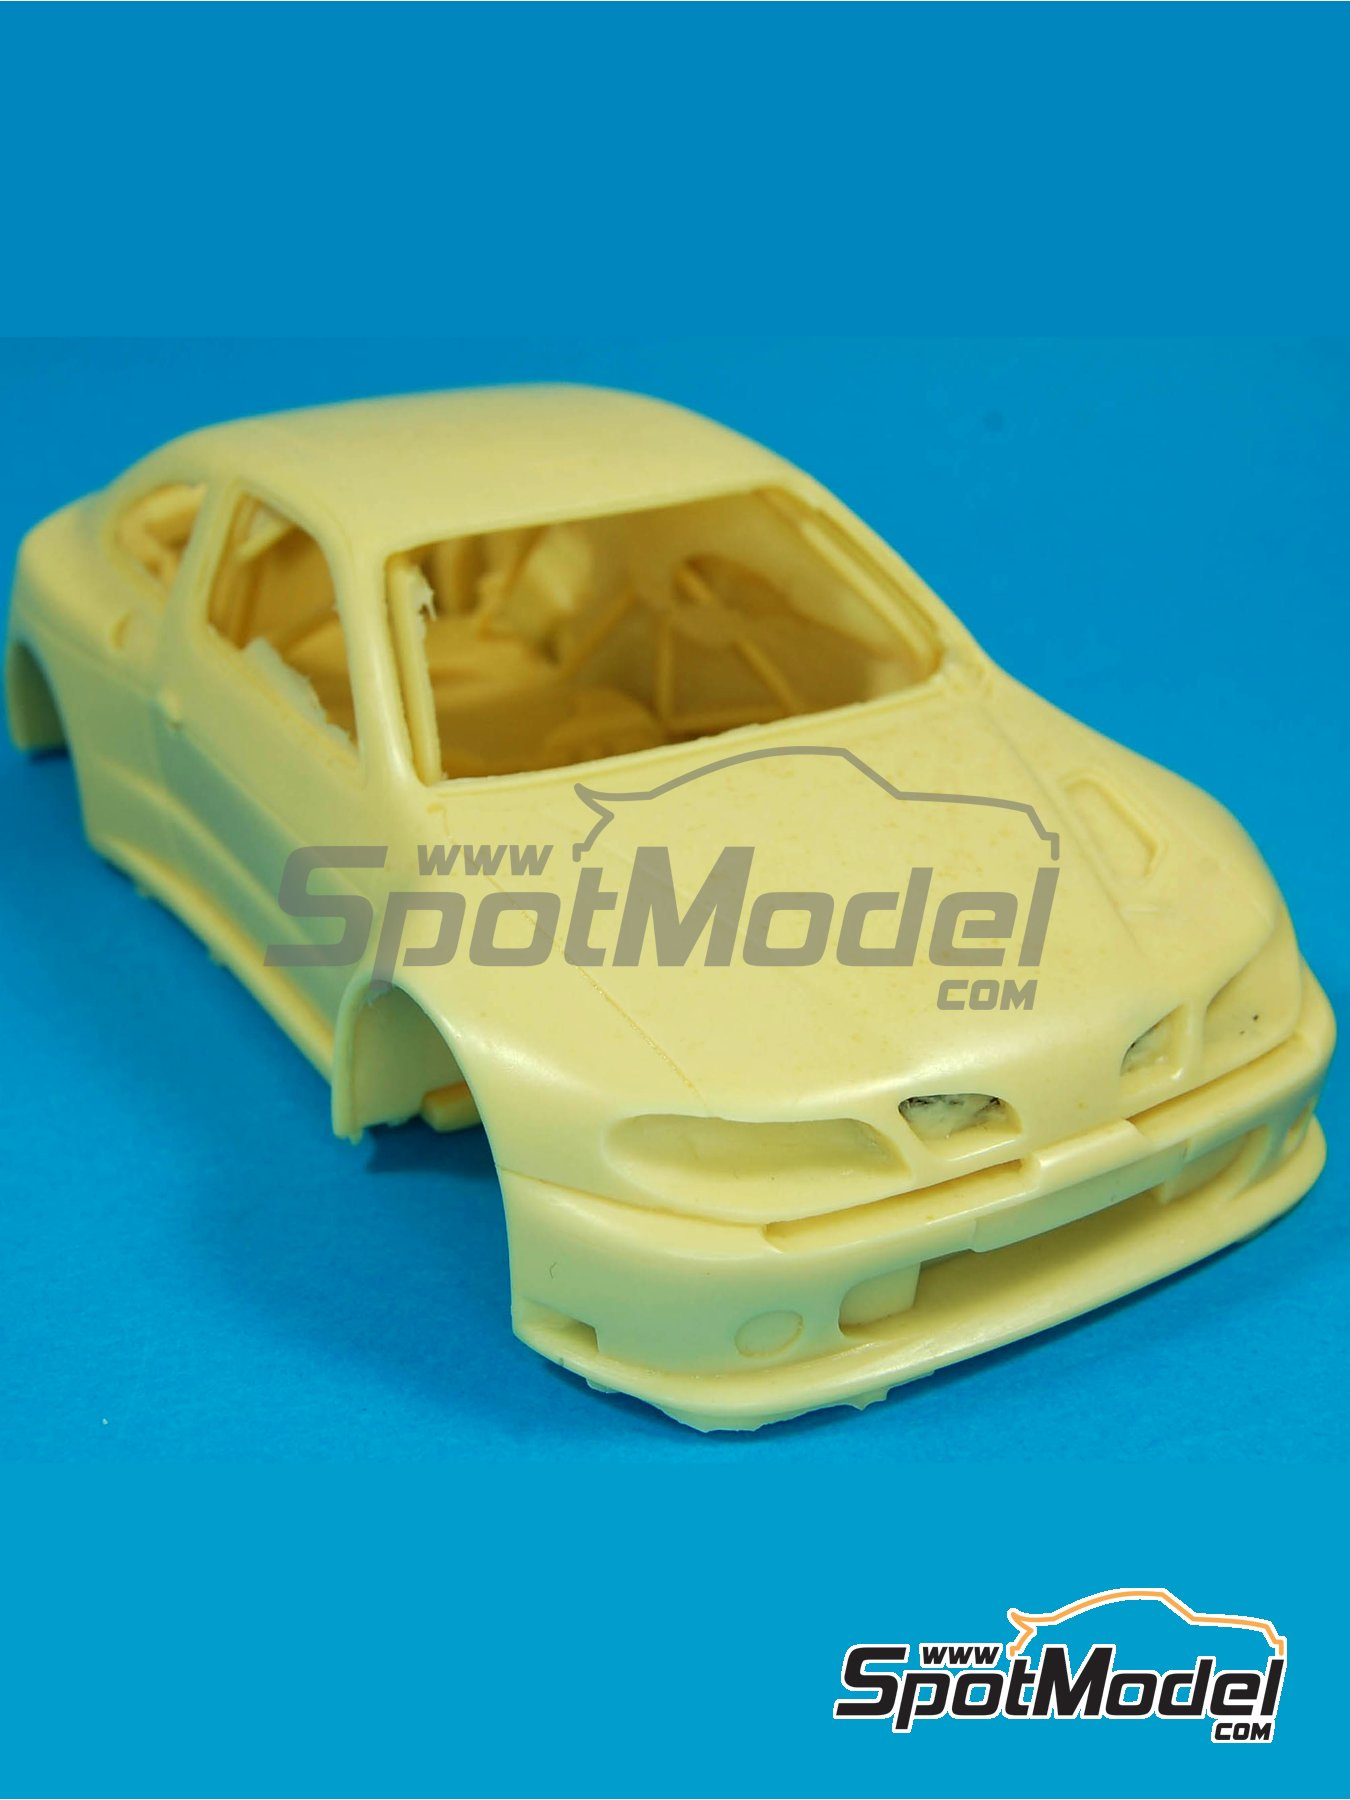 Renault Megane Maxi Kit Car | Bodywork in 1/24 scale manufactured by Renaissance Models (ref. CTR2402-BODY) image